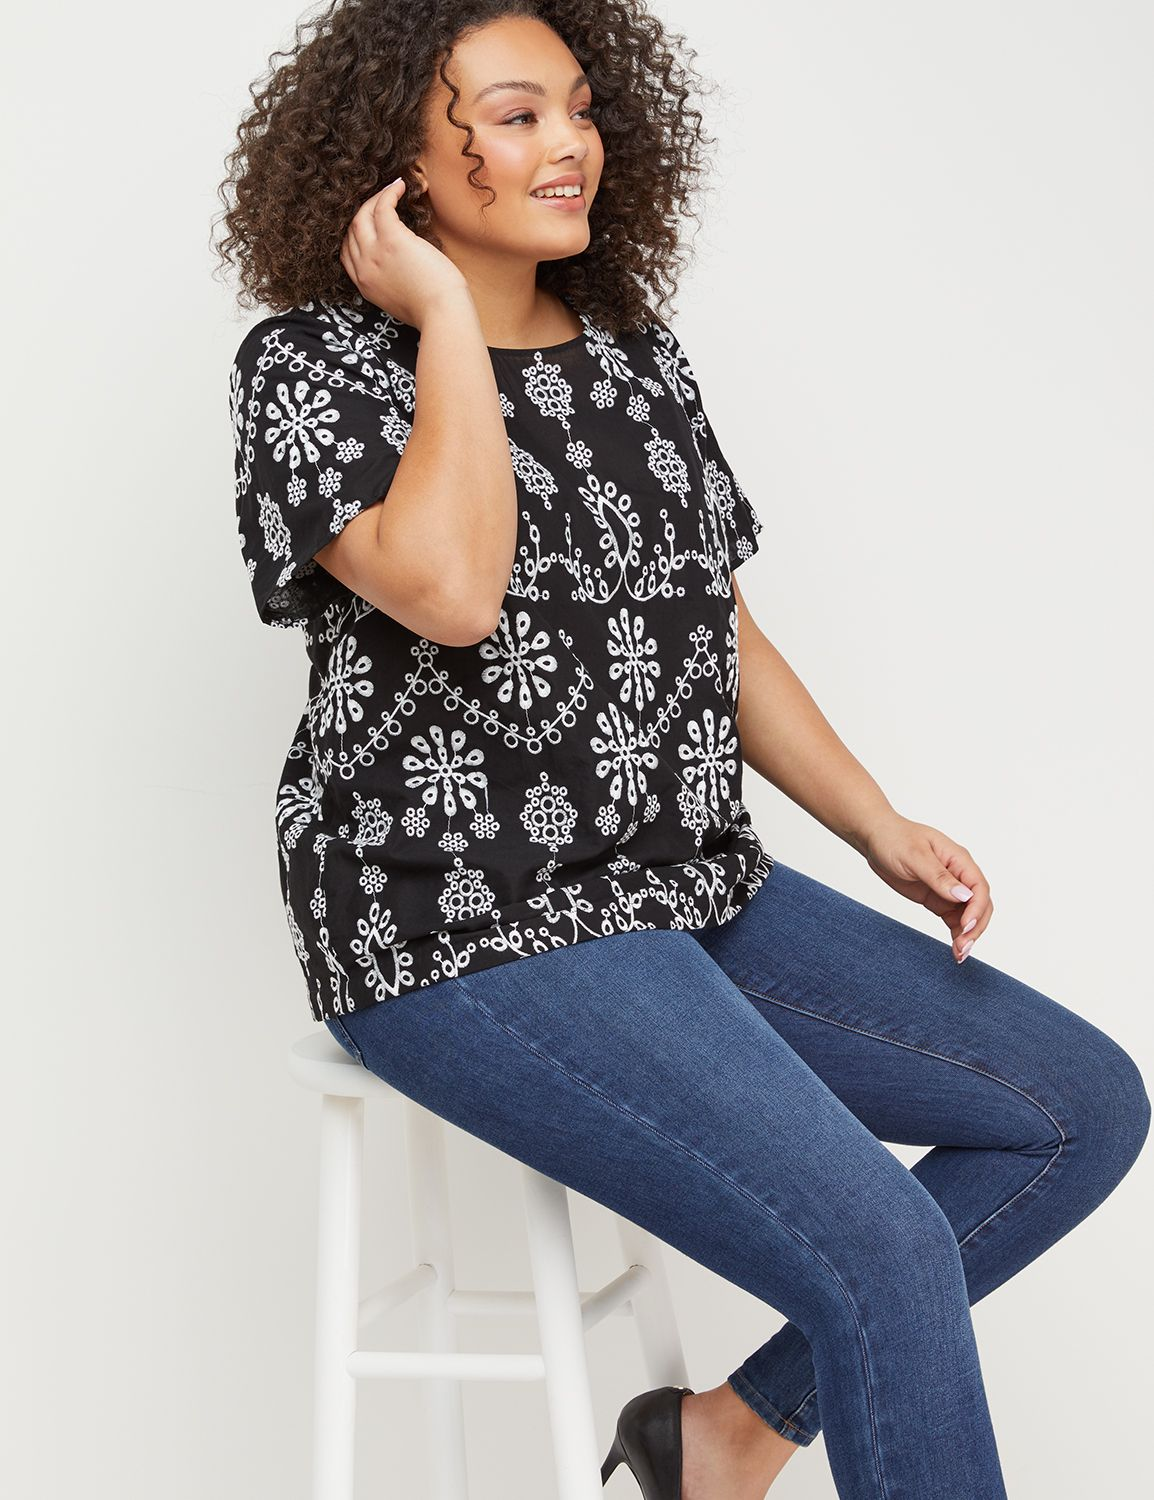 #tops,-Lane Bryant Women's Embroidered Top 14 Black-